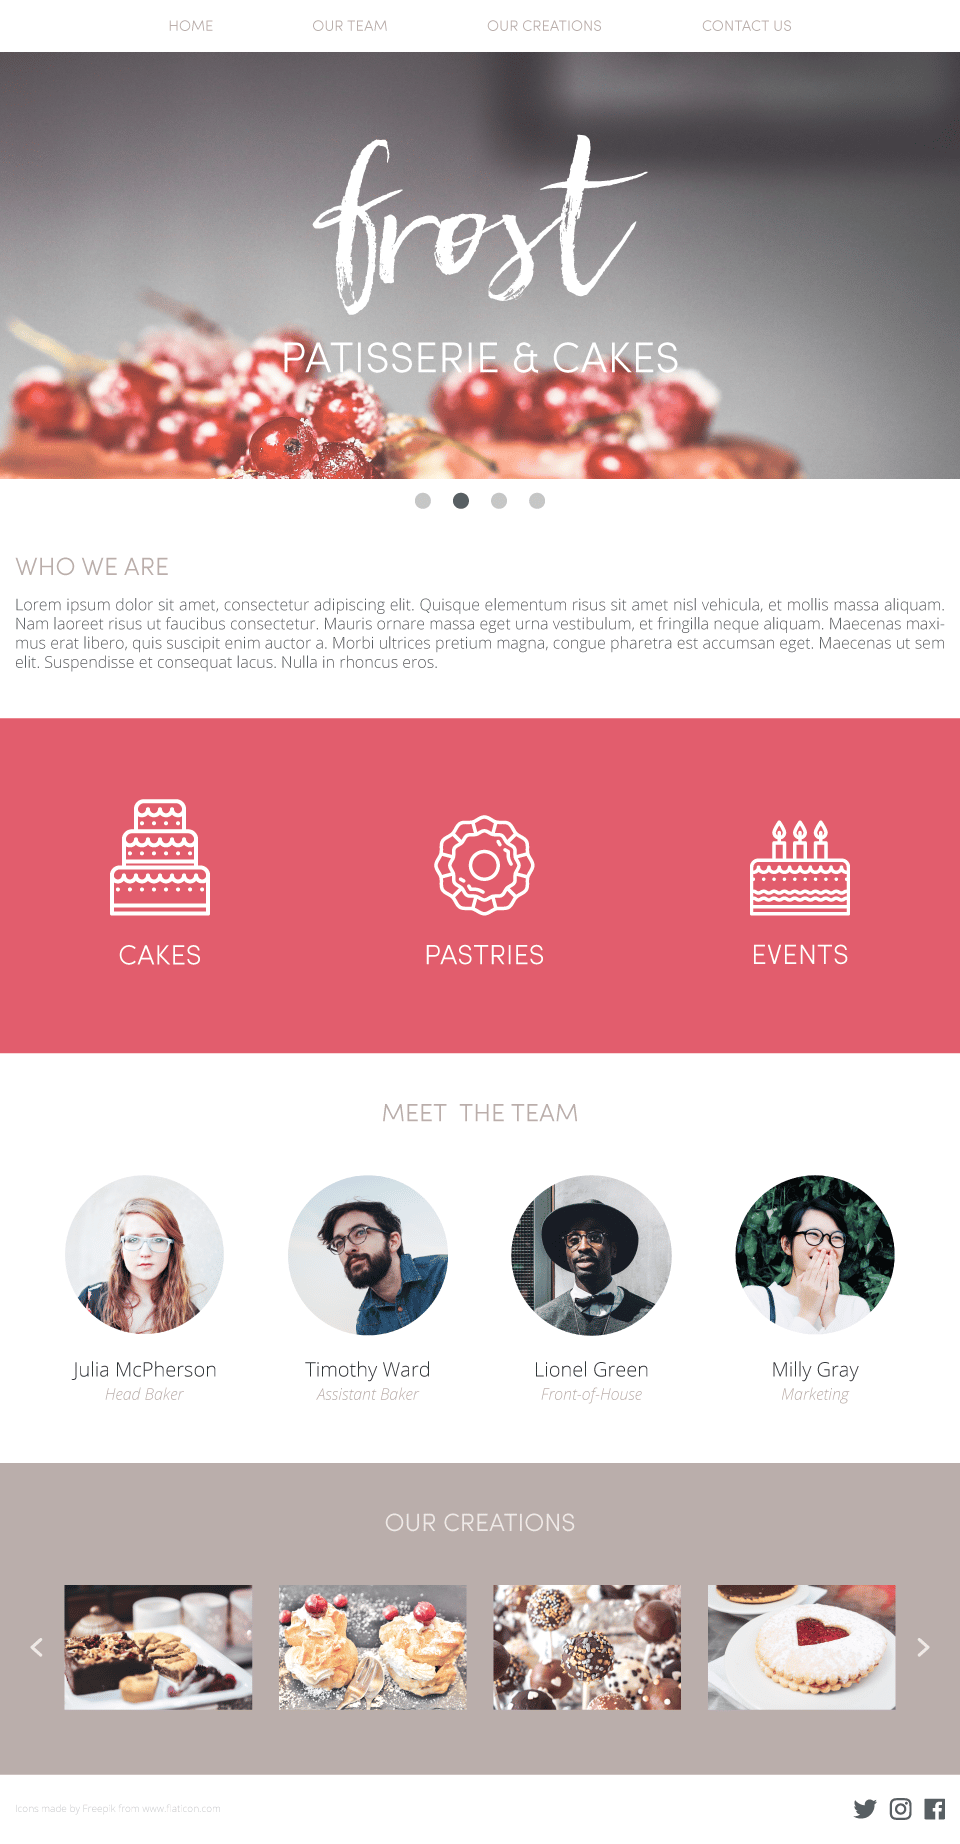 Frost - Patisserie & Cakes Website - image 1 - student project